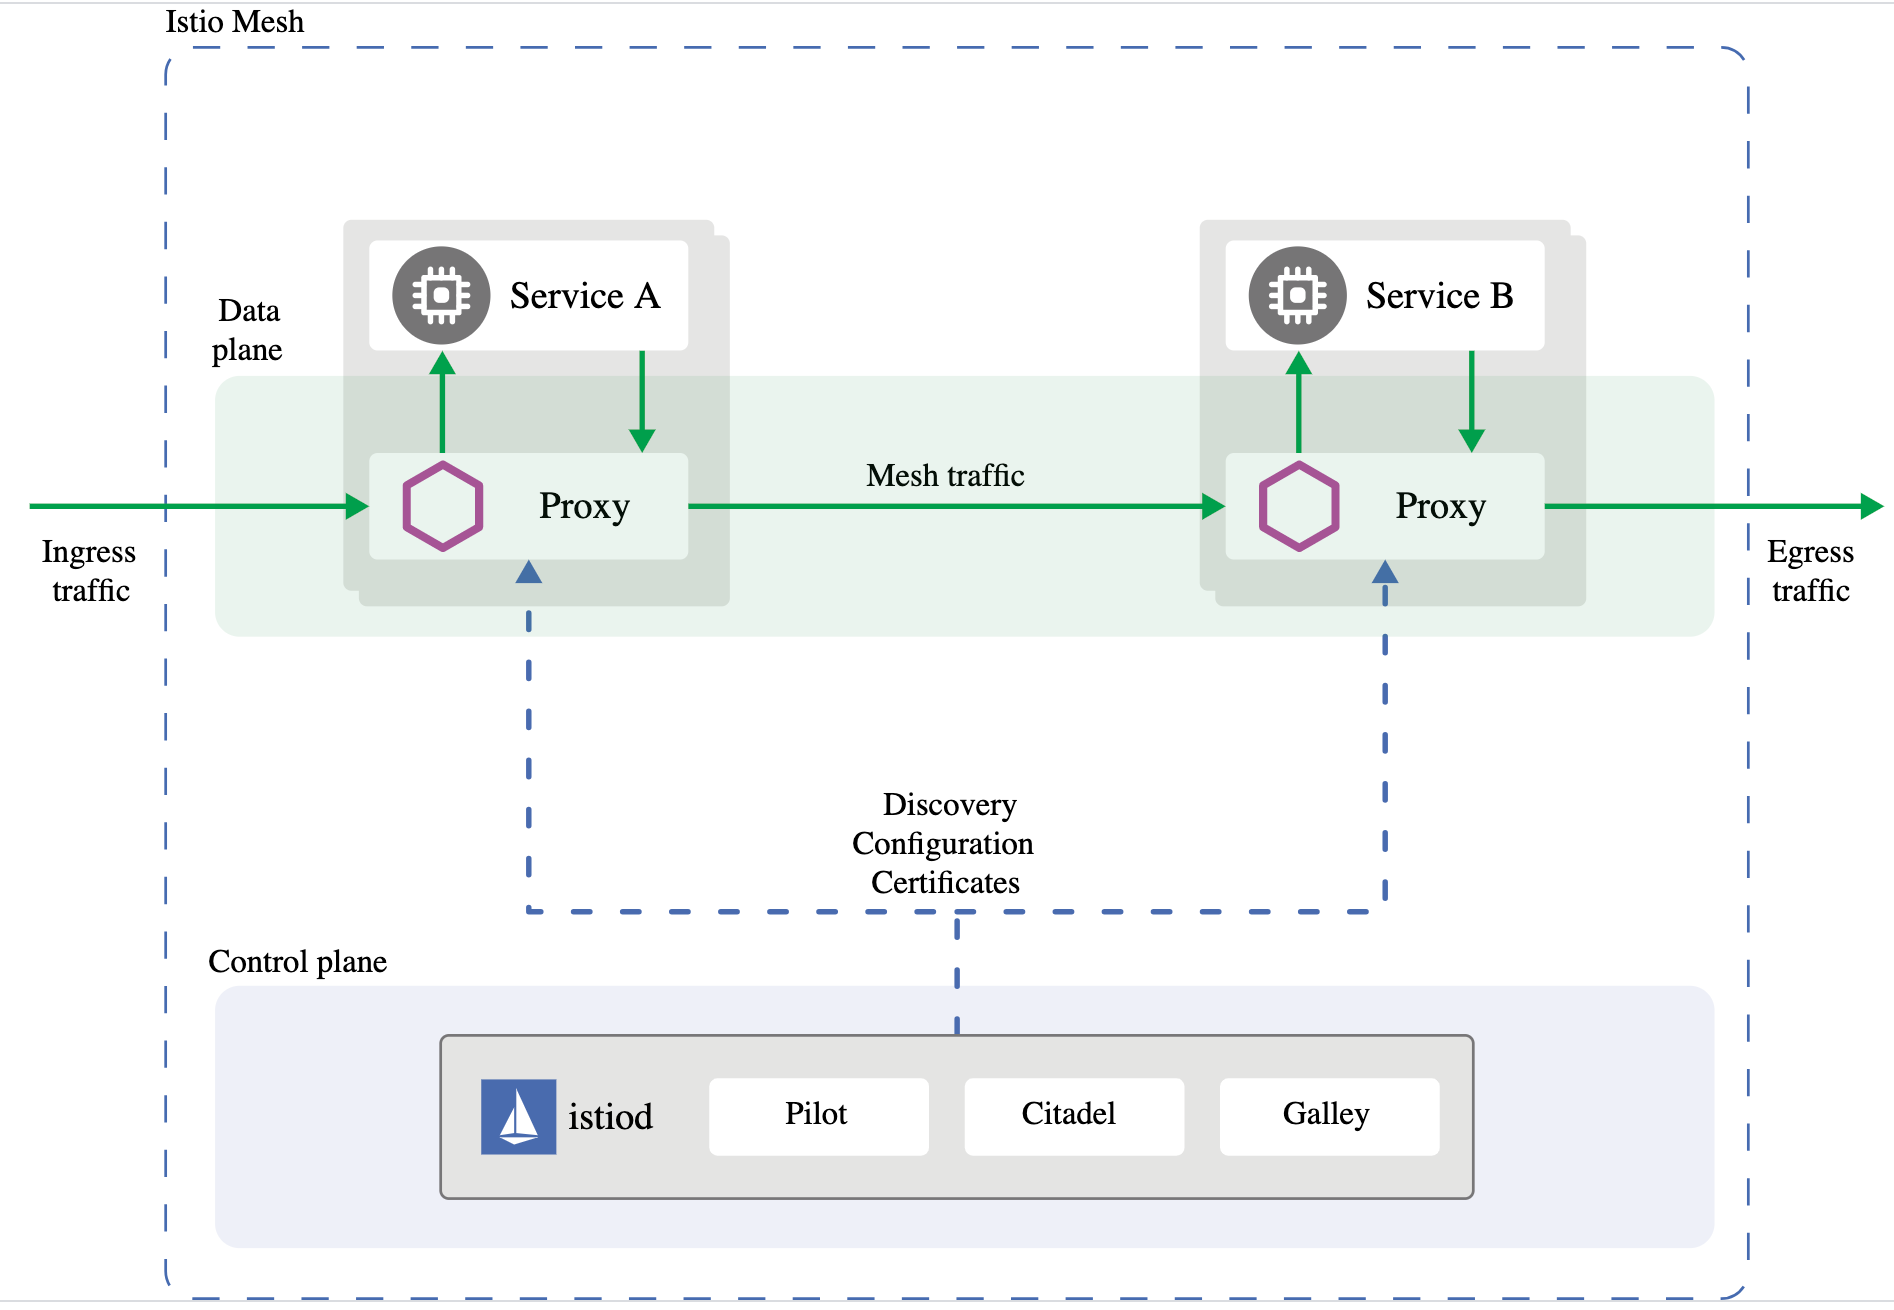 Istio service mesh uses sidecar proxies to manage traffic between services